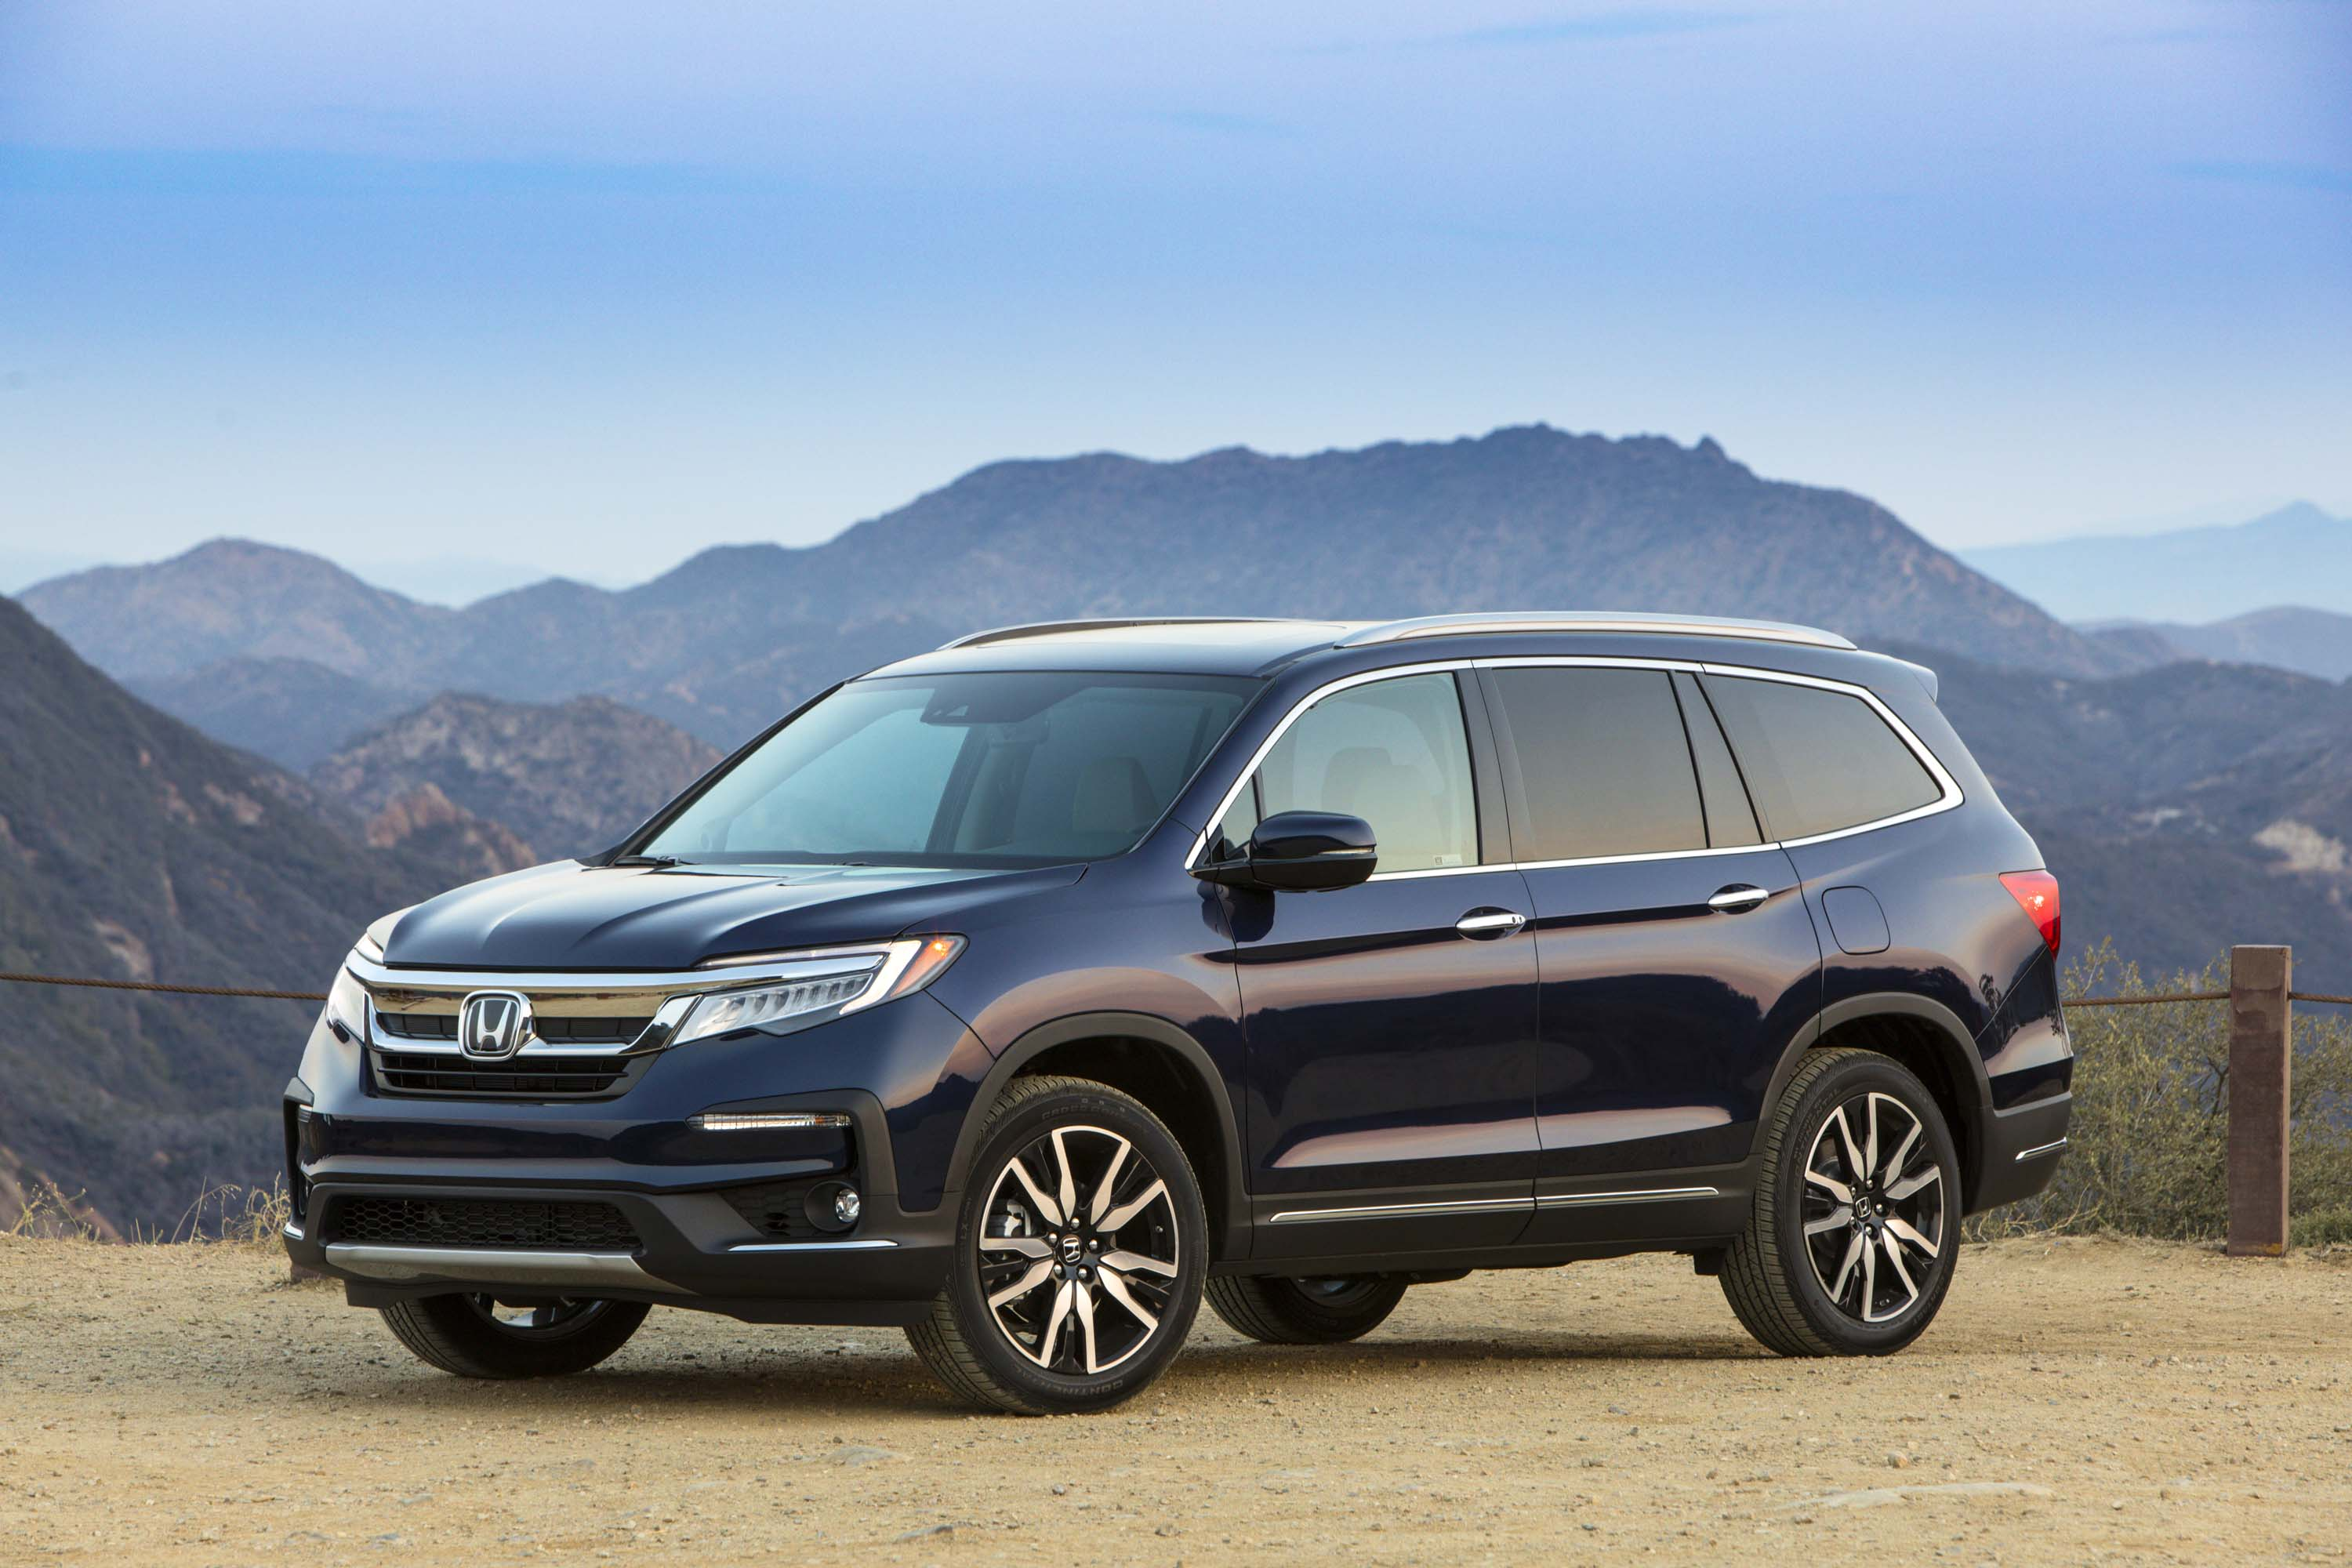 2019 Honda Pilot first drive: Soft-roading for the whole ...